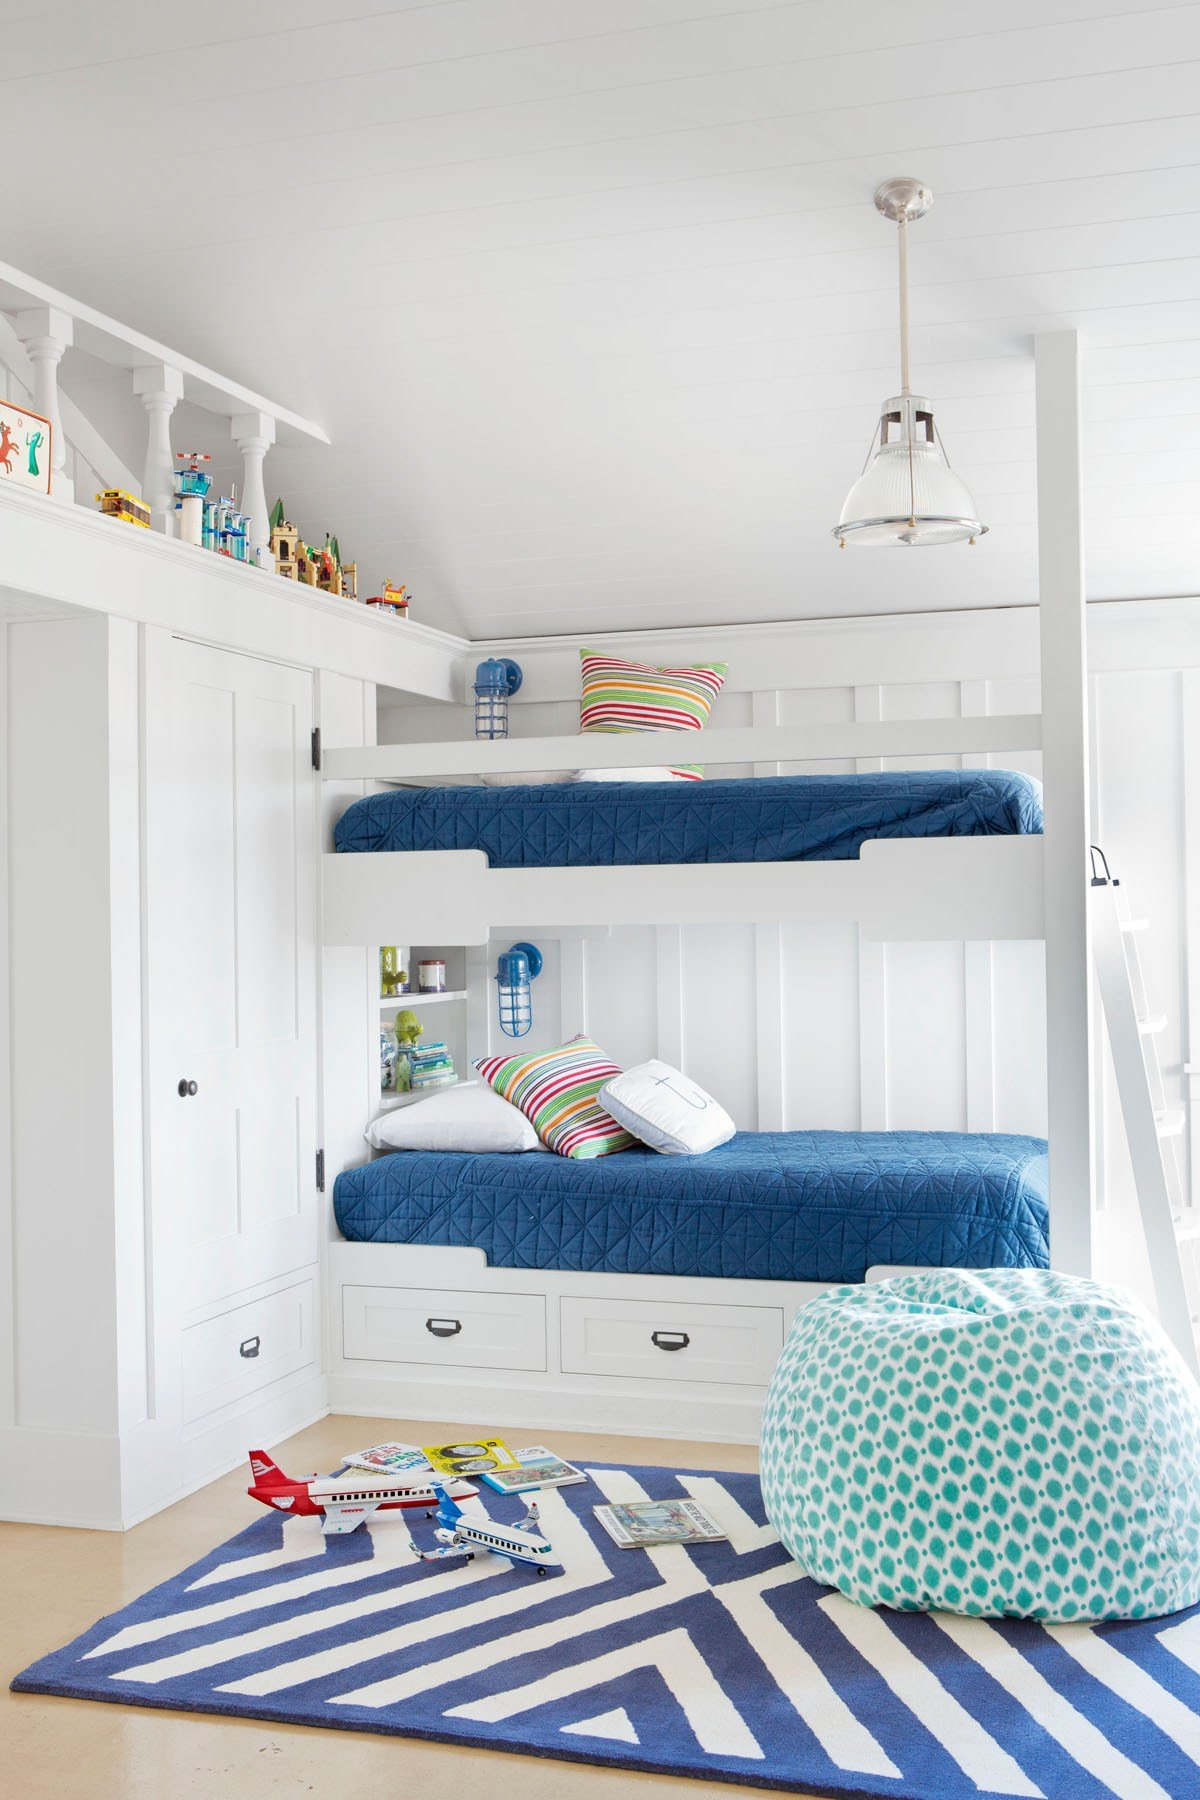 Best 14 Best Boys Bedroom Ideas Room Decor And Themes For A With Pictures